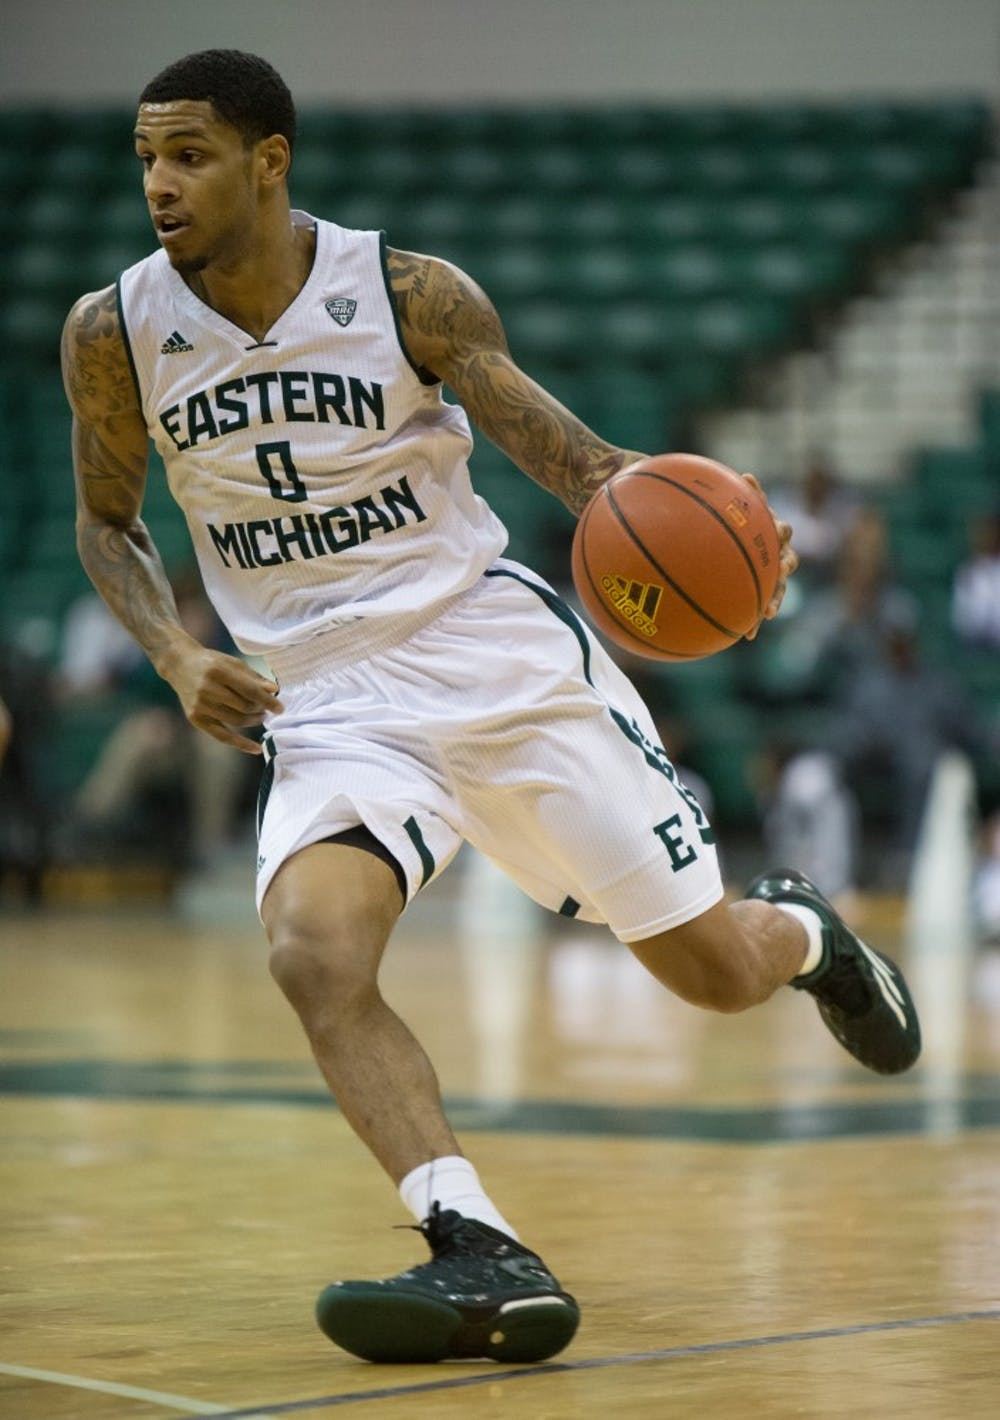 Ray Lee named MAC West Player of the Week